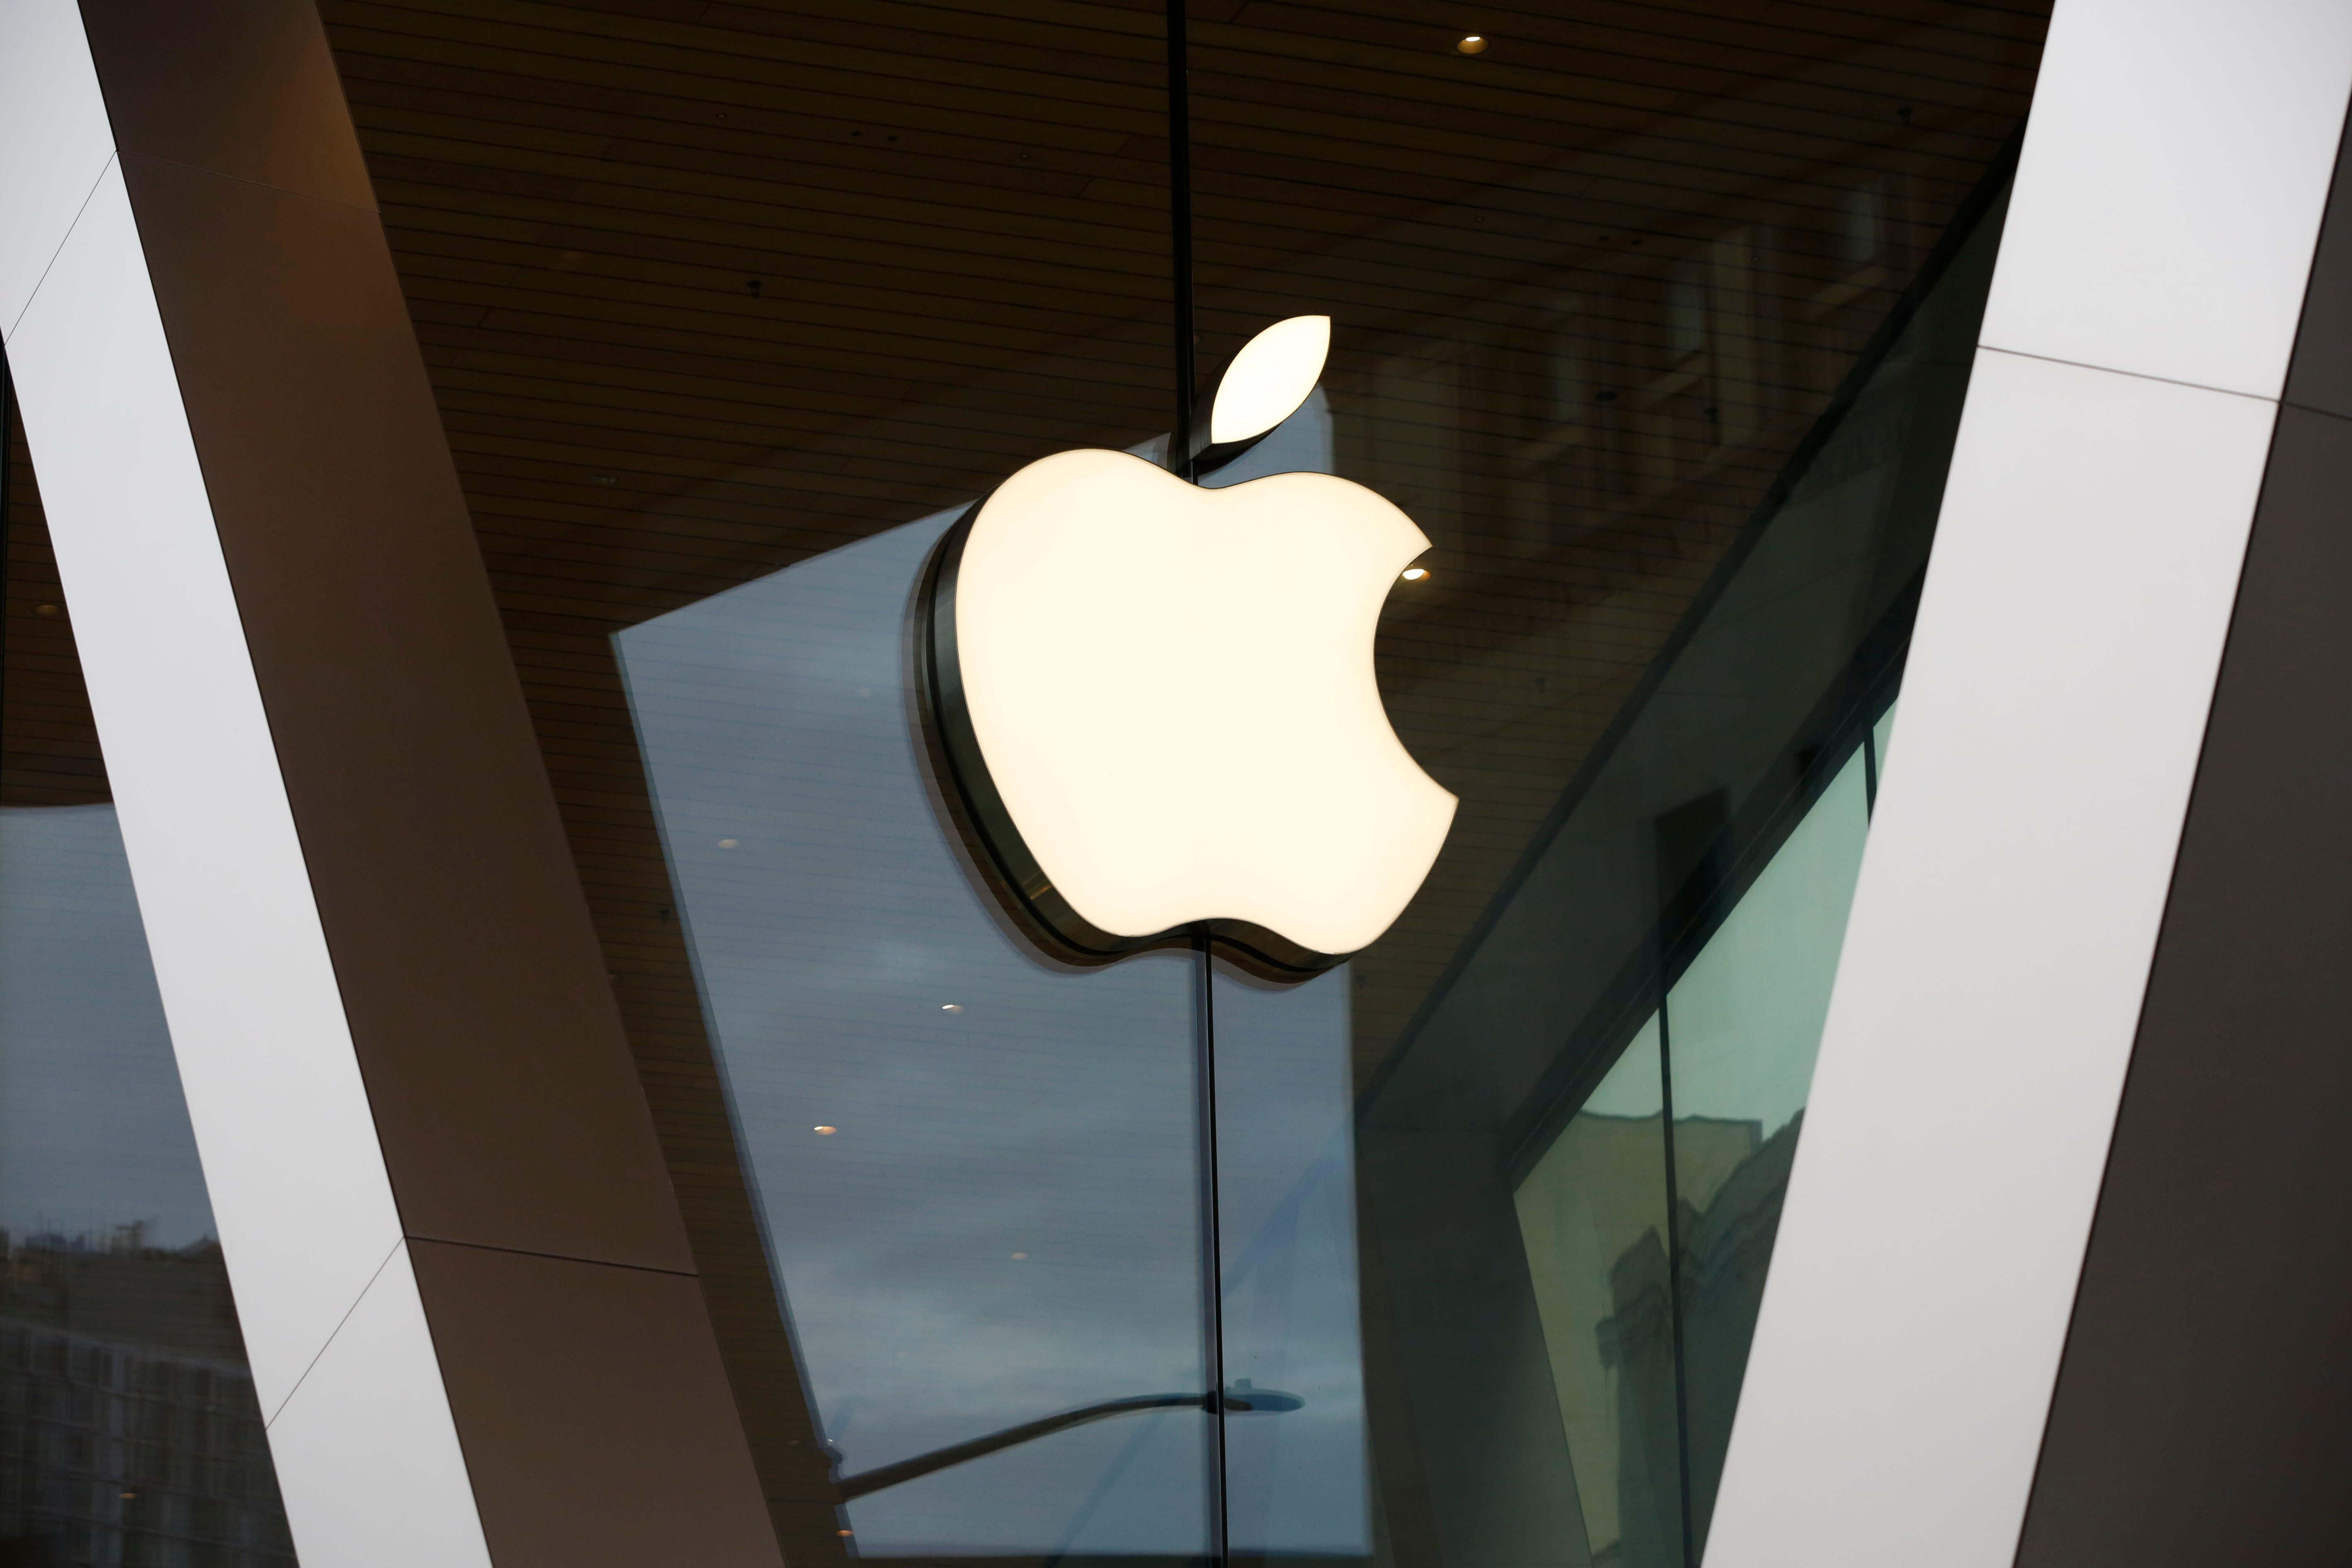 More Apple stores now closed: 28% of stores listed as temporarily closed as COVID-19 cases rise